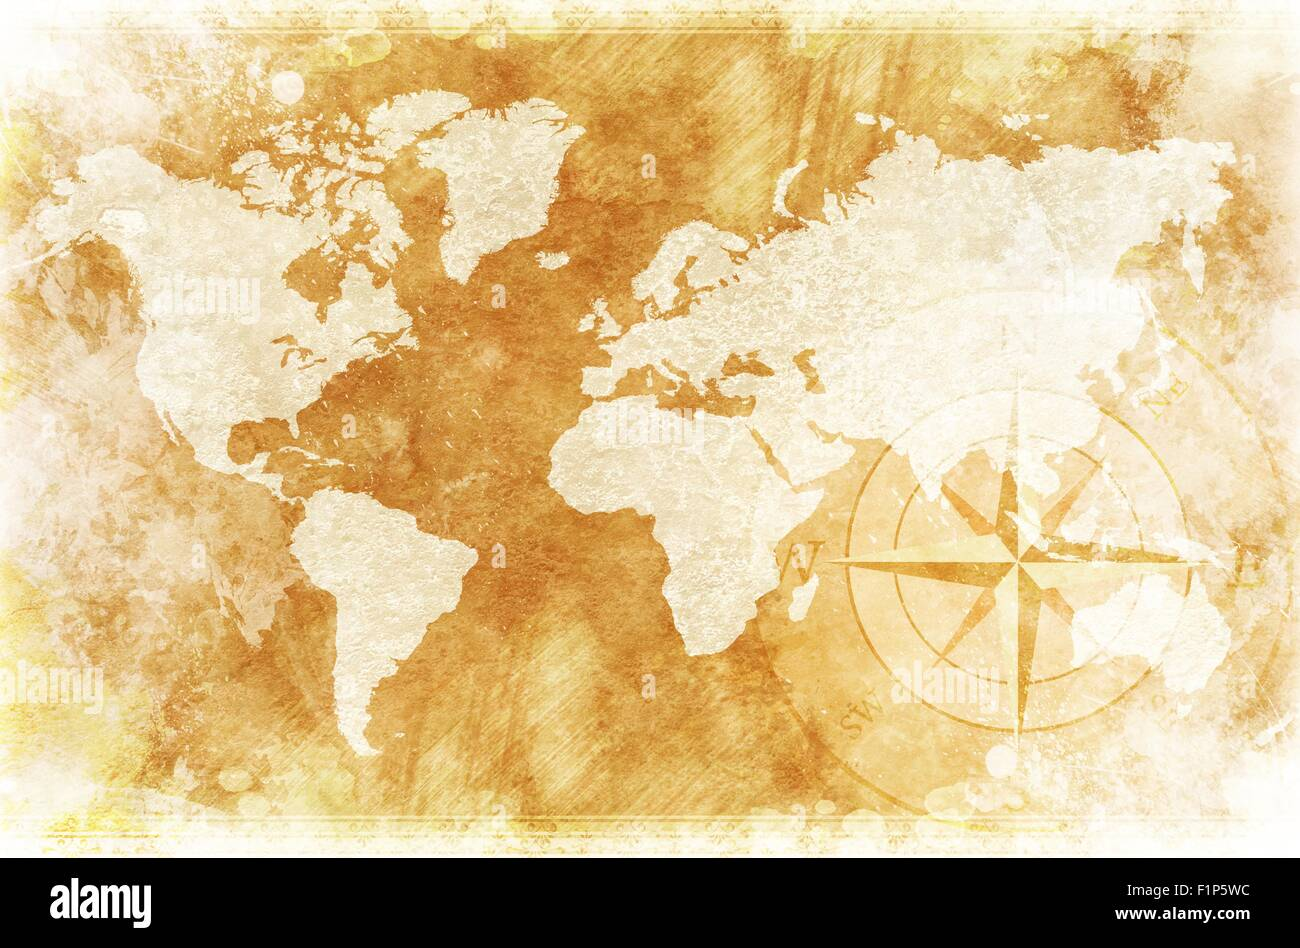 old-fashioned world map design: rustic world map with compass rose